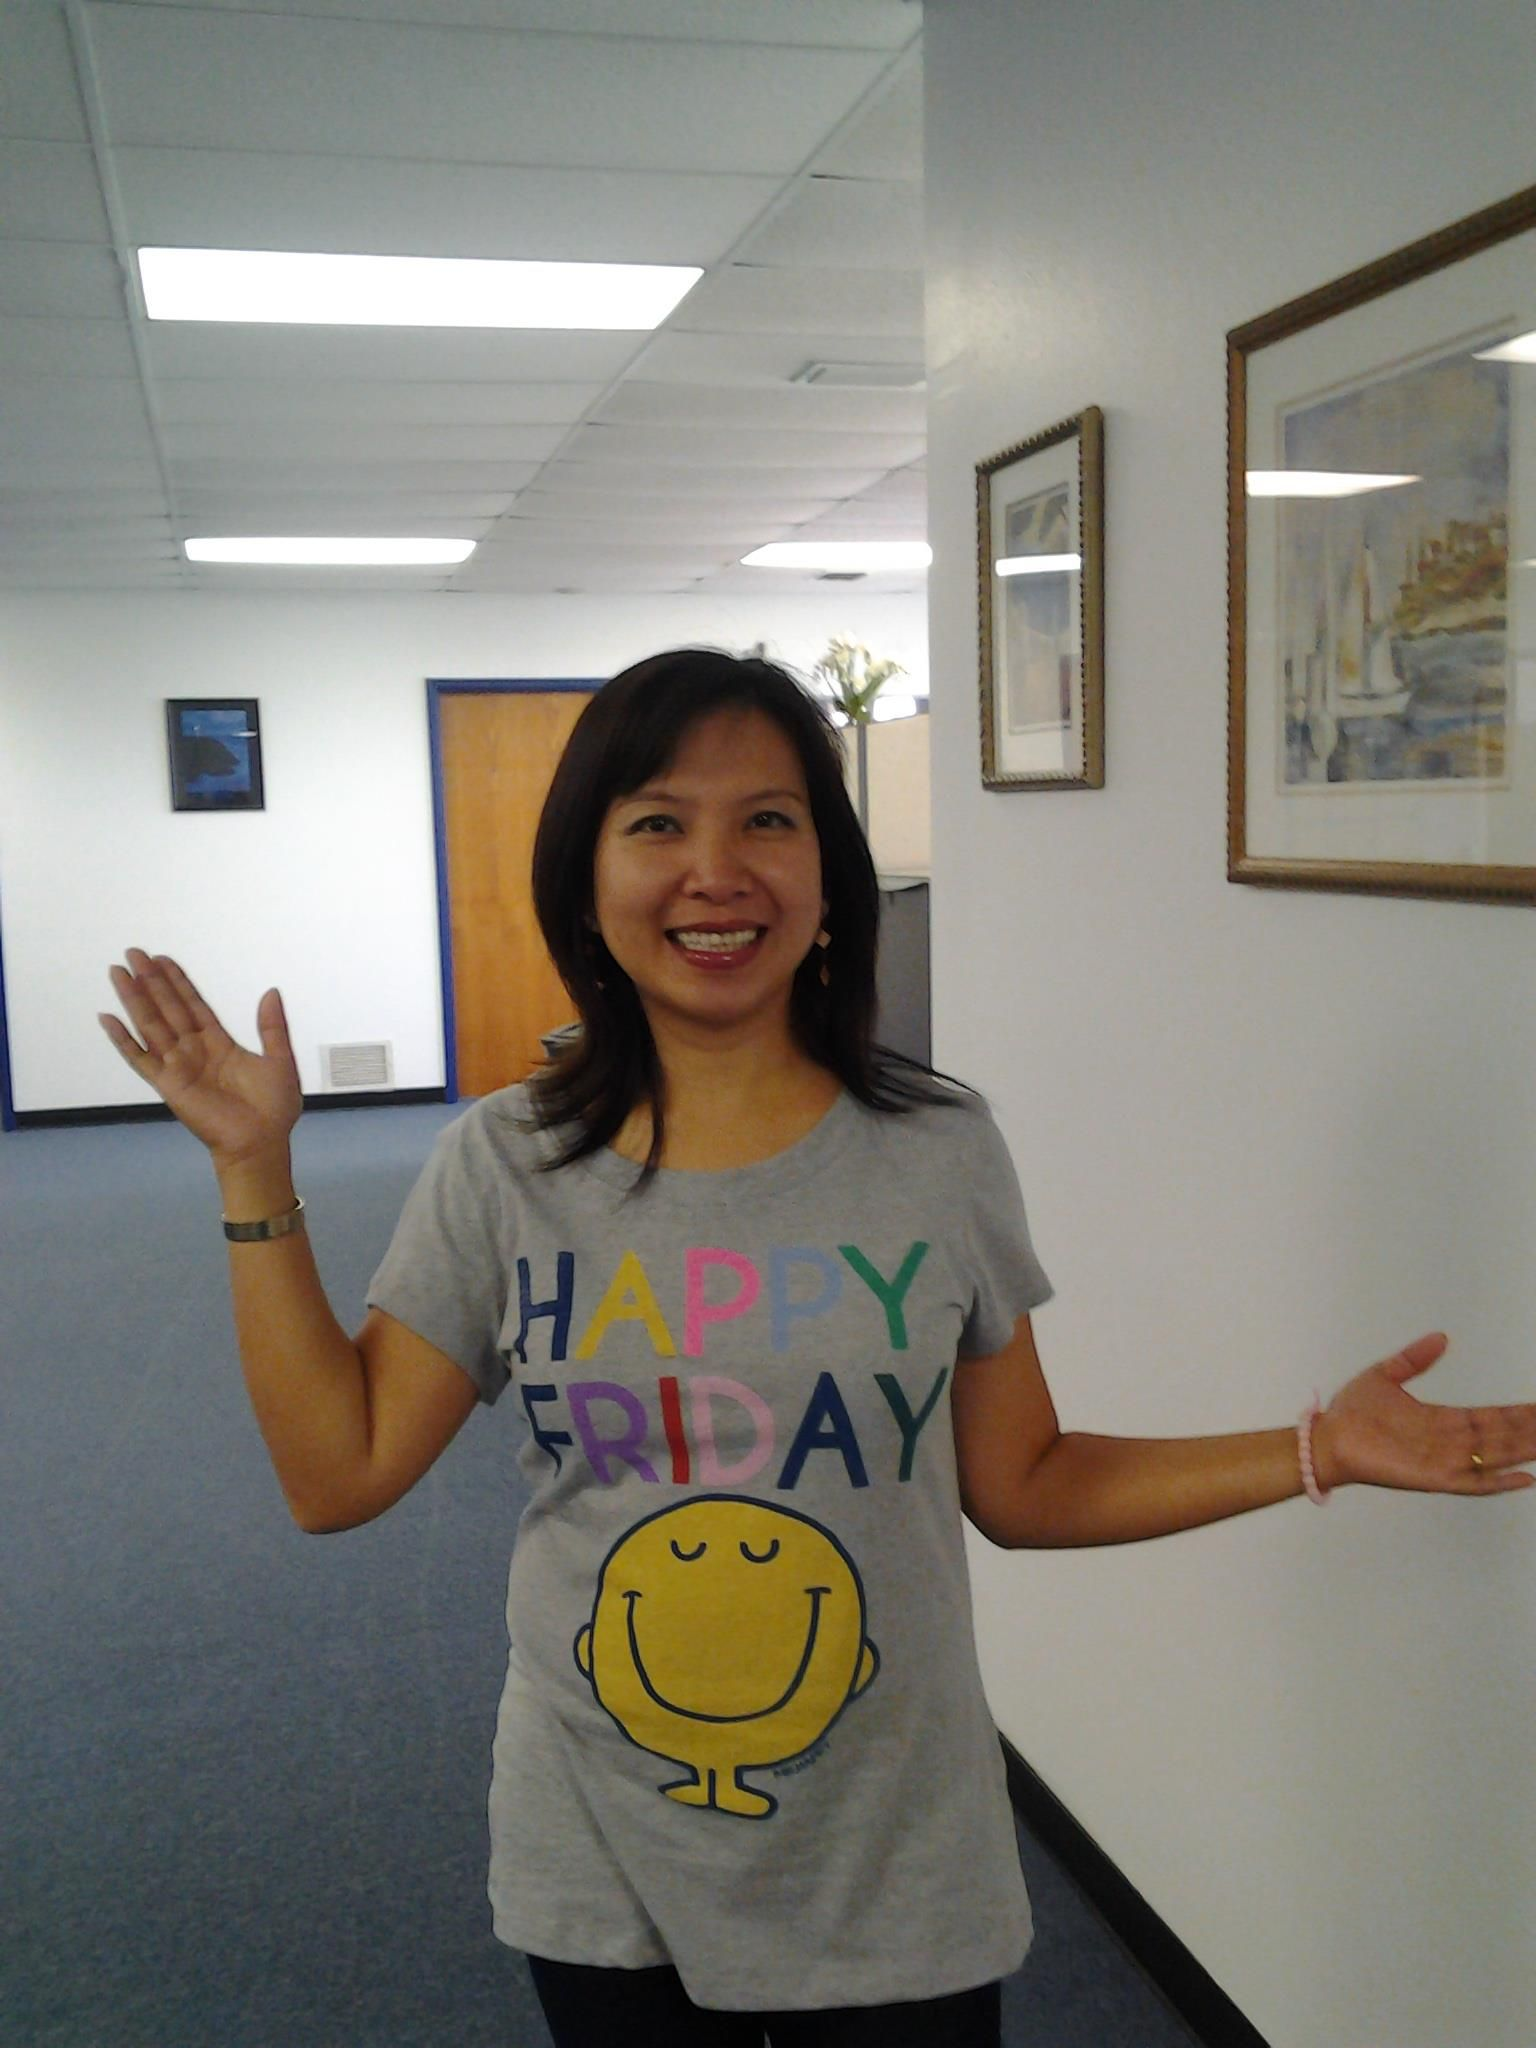 Happy Friday! Developer Van T shows off our favorite t-shirt   (Van is pronounced like fawn, not like man)